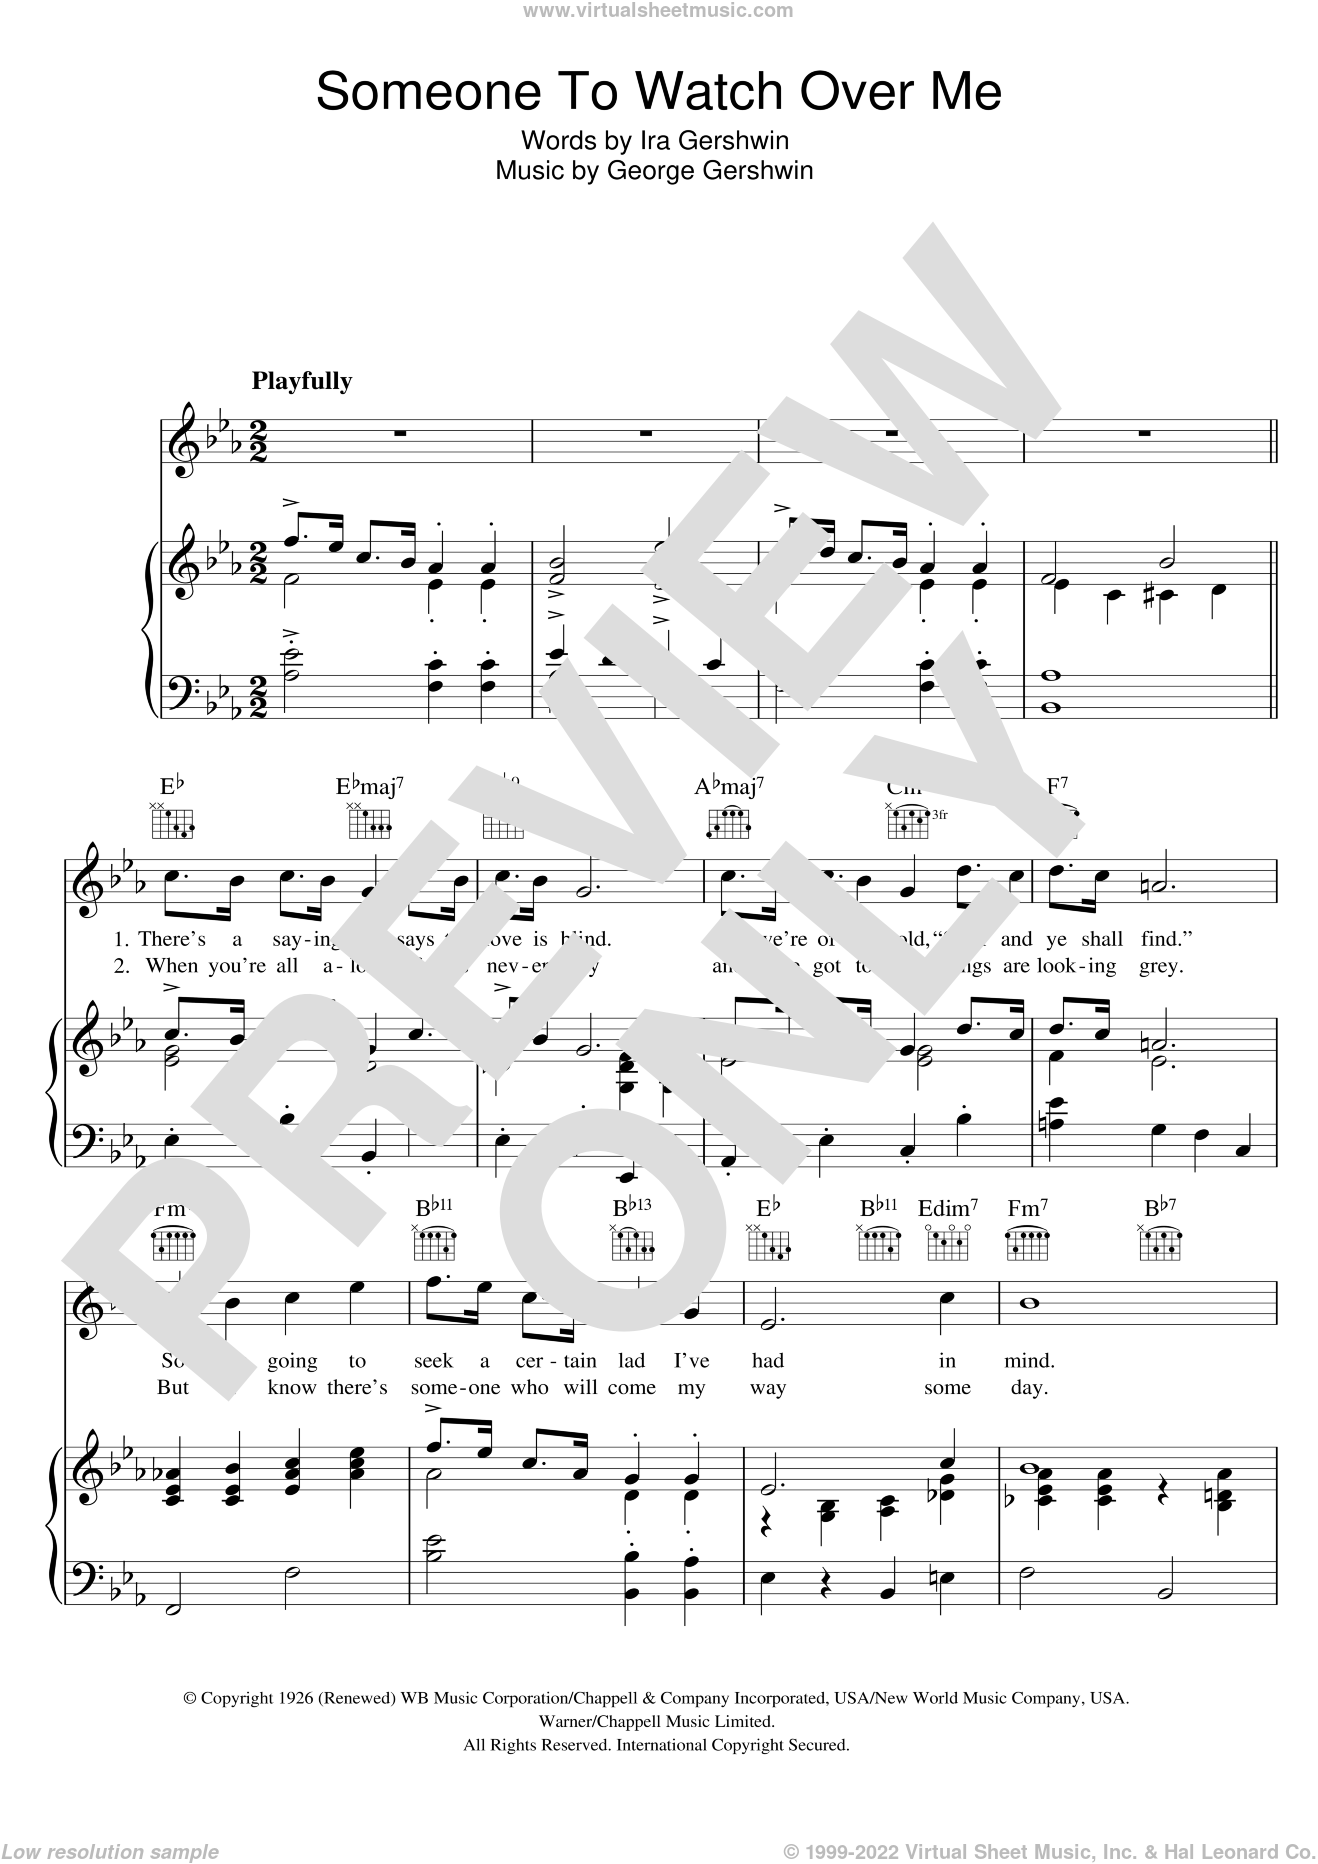 Someone To Watch Over Me sheet music for voice, piano or guitar by Ira Gershwin